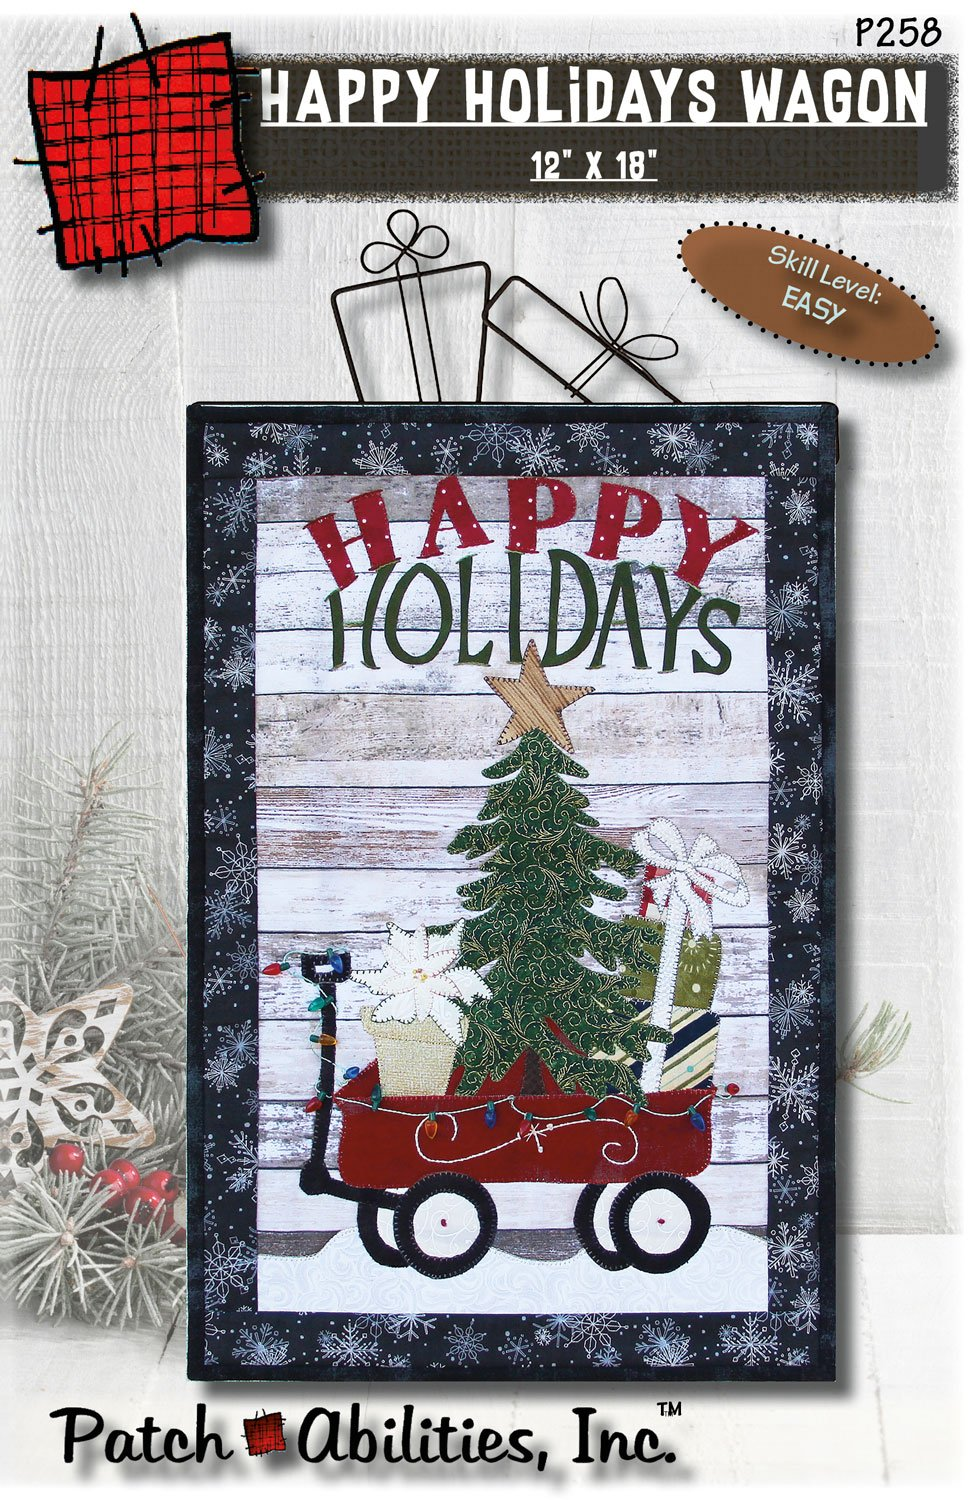 P258 Happy Holidays Wagon DIGITAL DOWNLOAD PATTERN